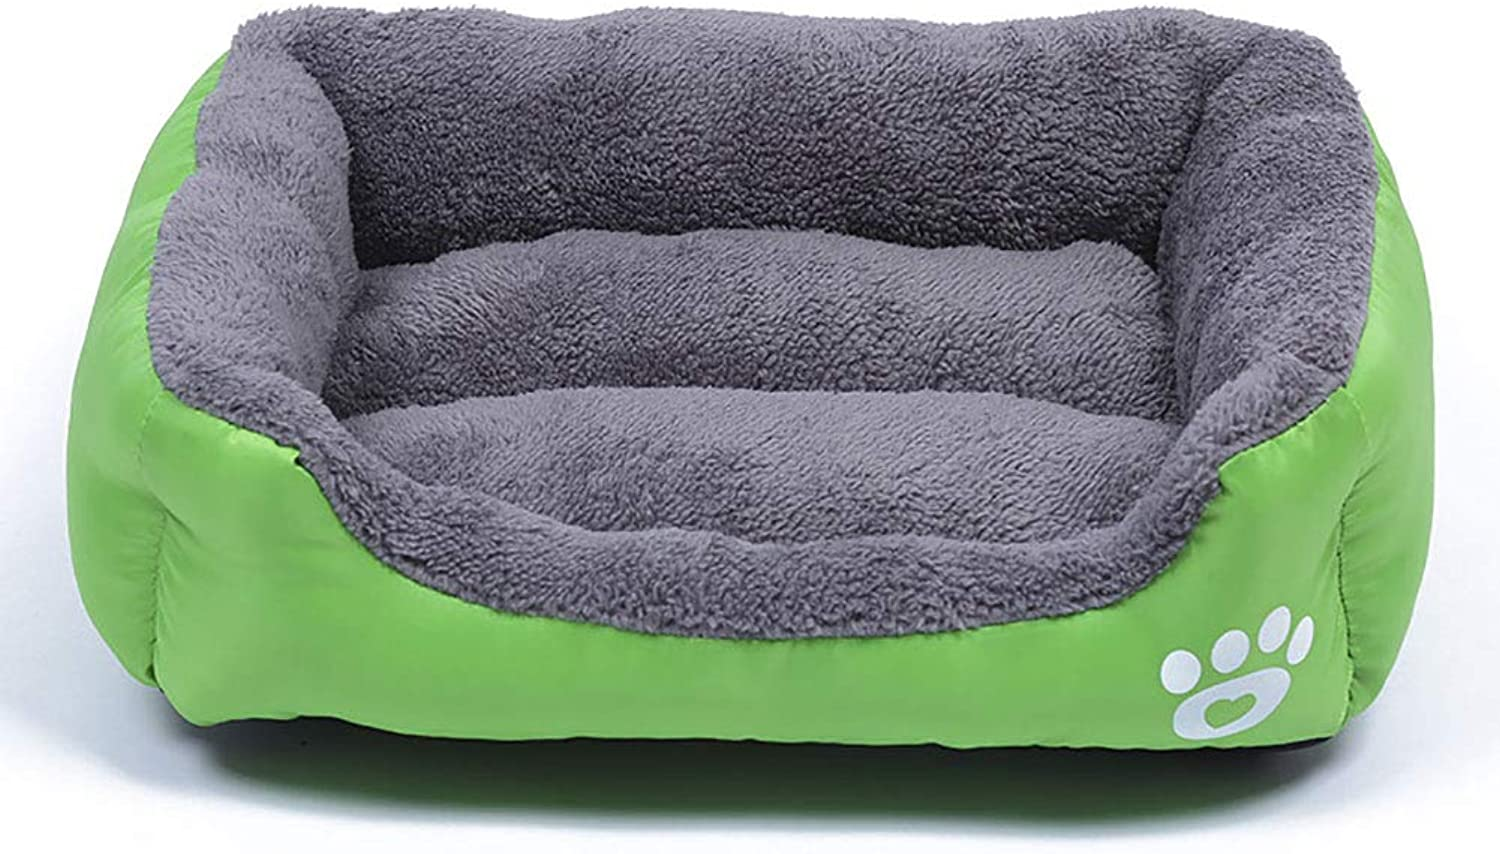 Square Pet Nest, Anti-Sewing Non-Slip Warm Pet Nest Cat Kennel Fashion Pet Bed Suitable for Small Medium and Large Dog Bed